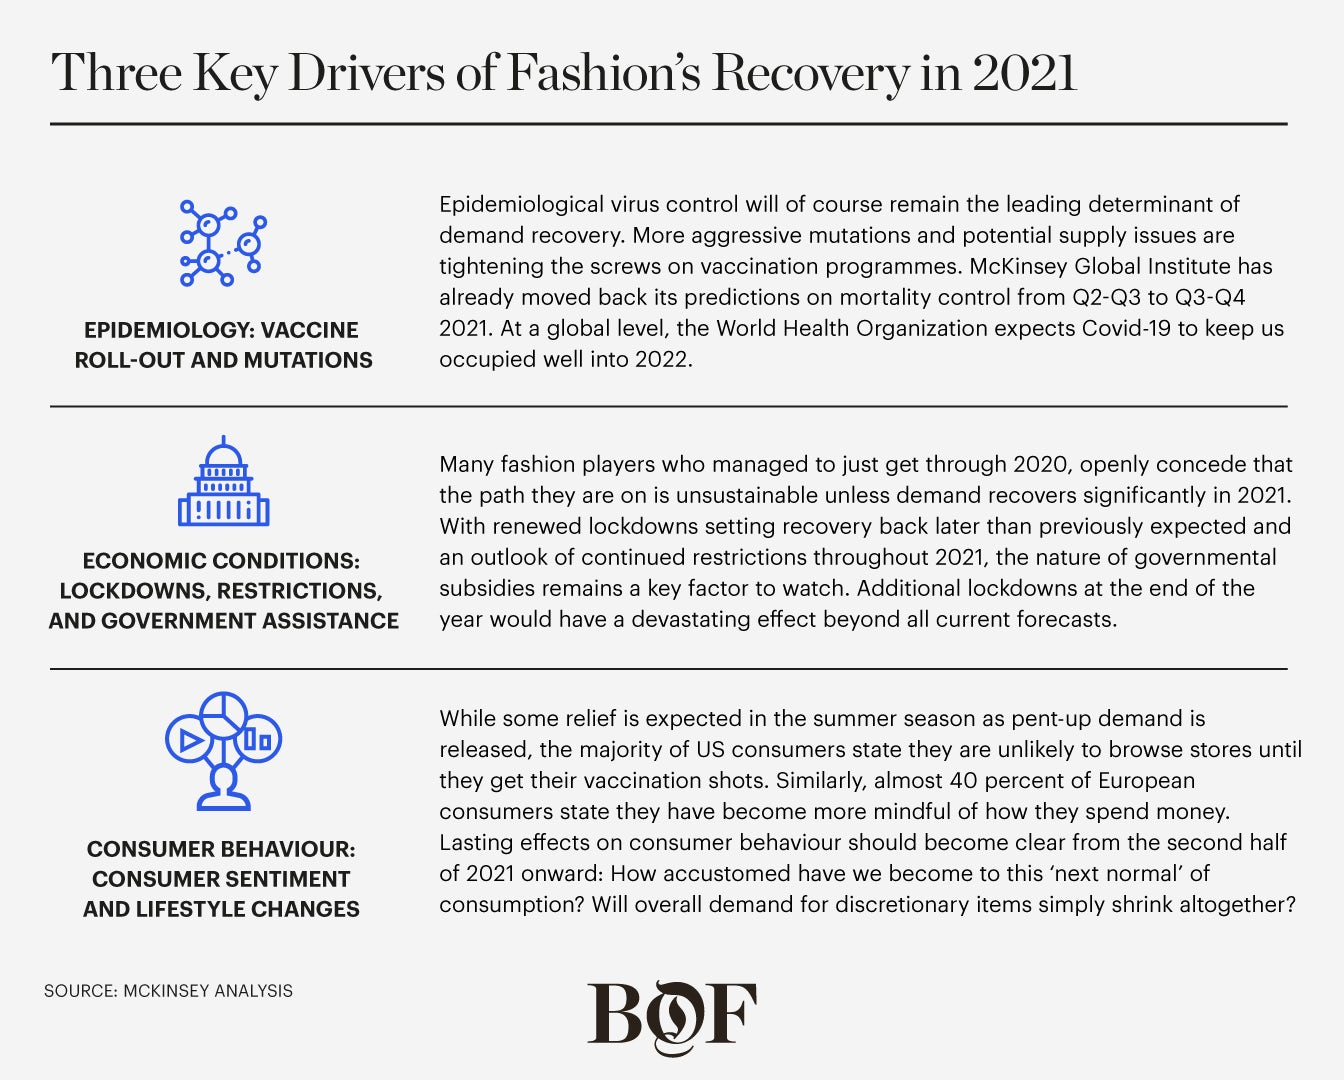 Three Key Drivers of Fashion\'s Recovery in 2021. McKinsey & Company.